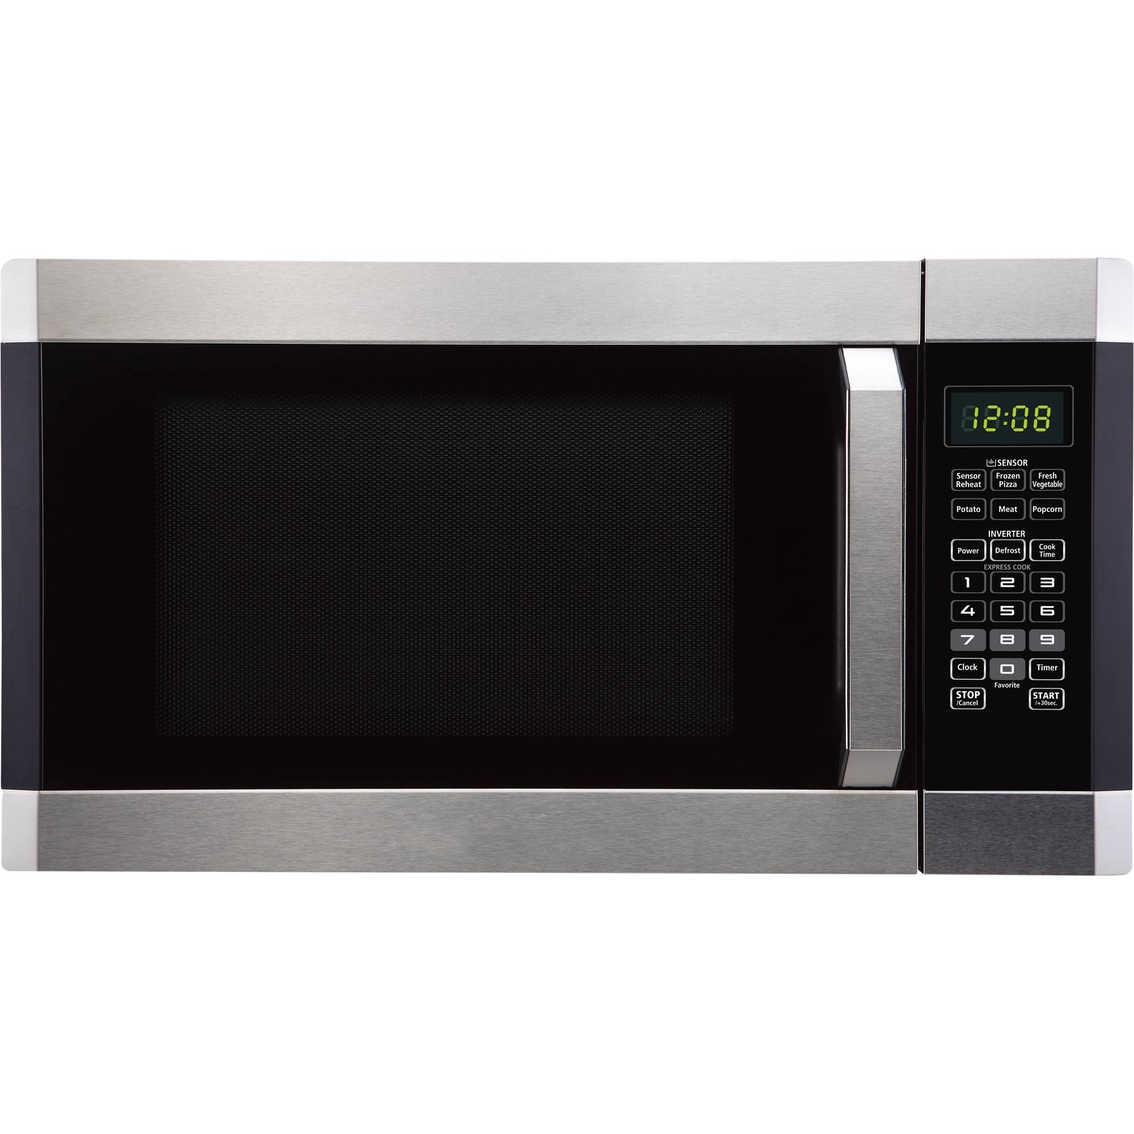 Simply Perfect 1 6cf Microwave Oven W